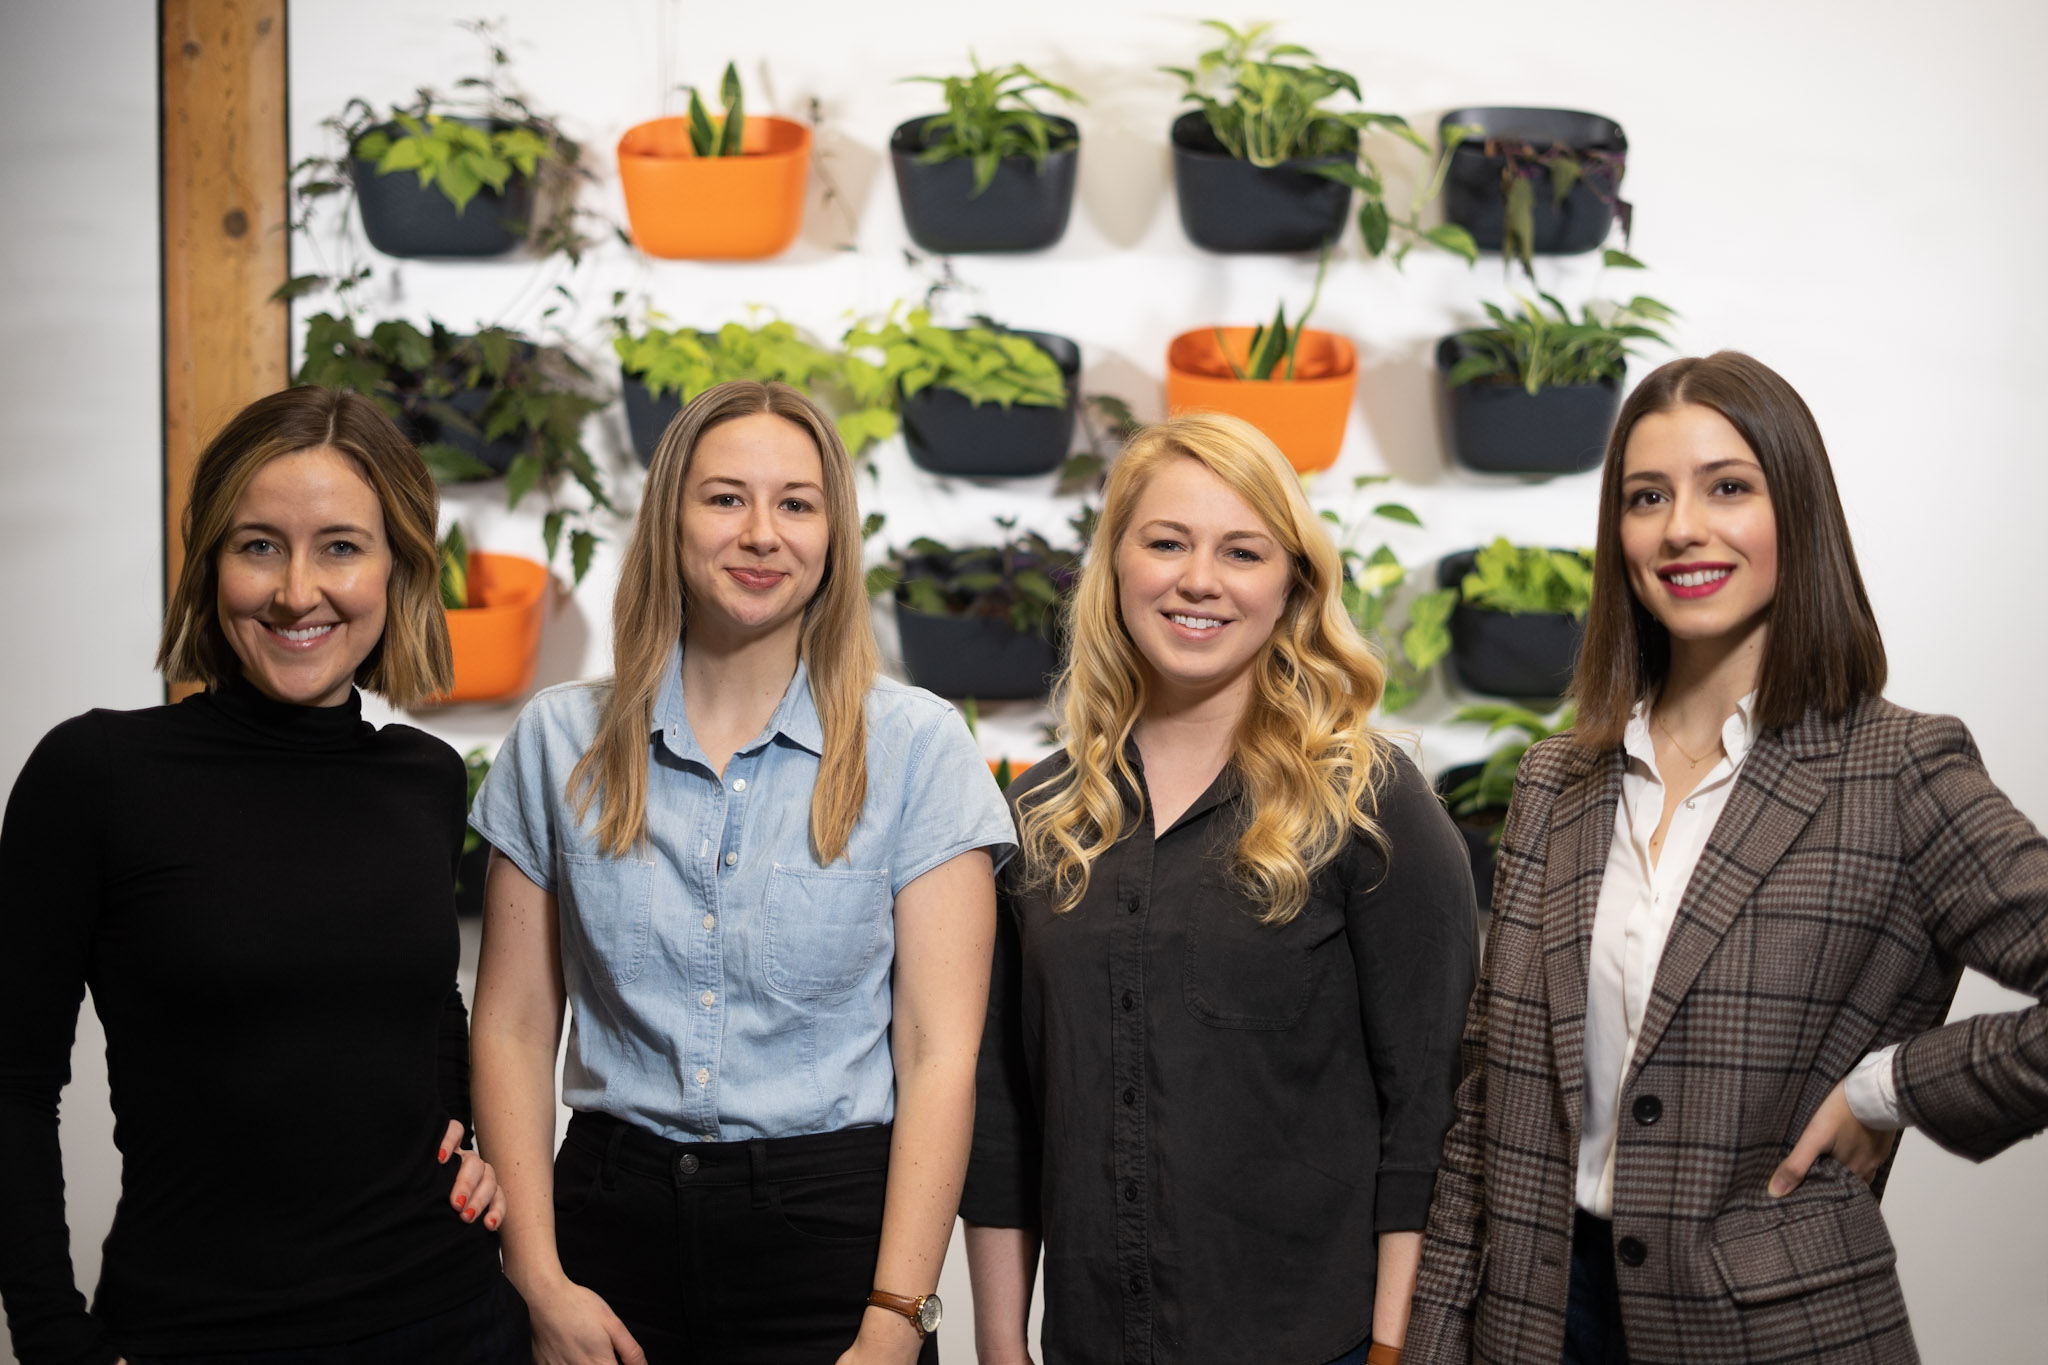 Ann Arbor's Shine & Rise Offers Resources, Community to Women in Tech